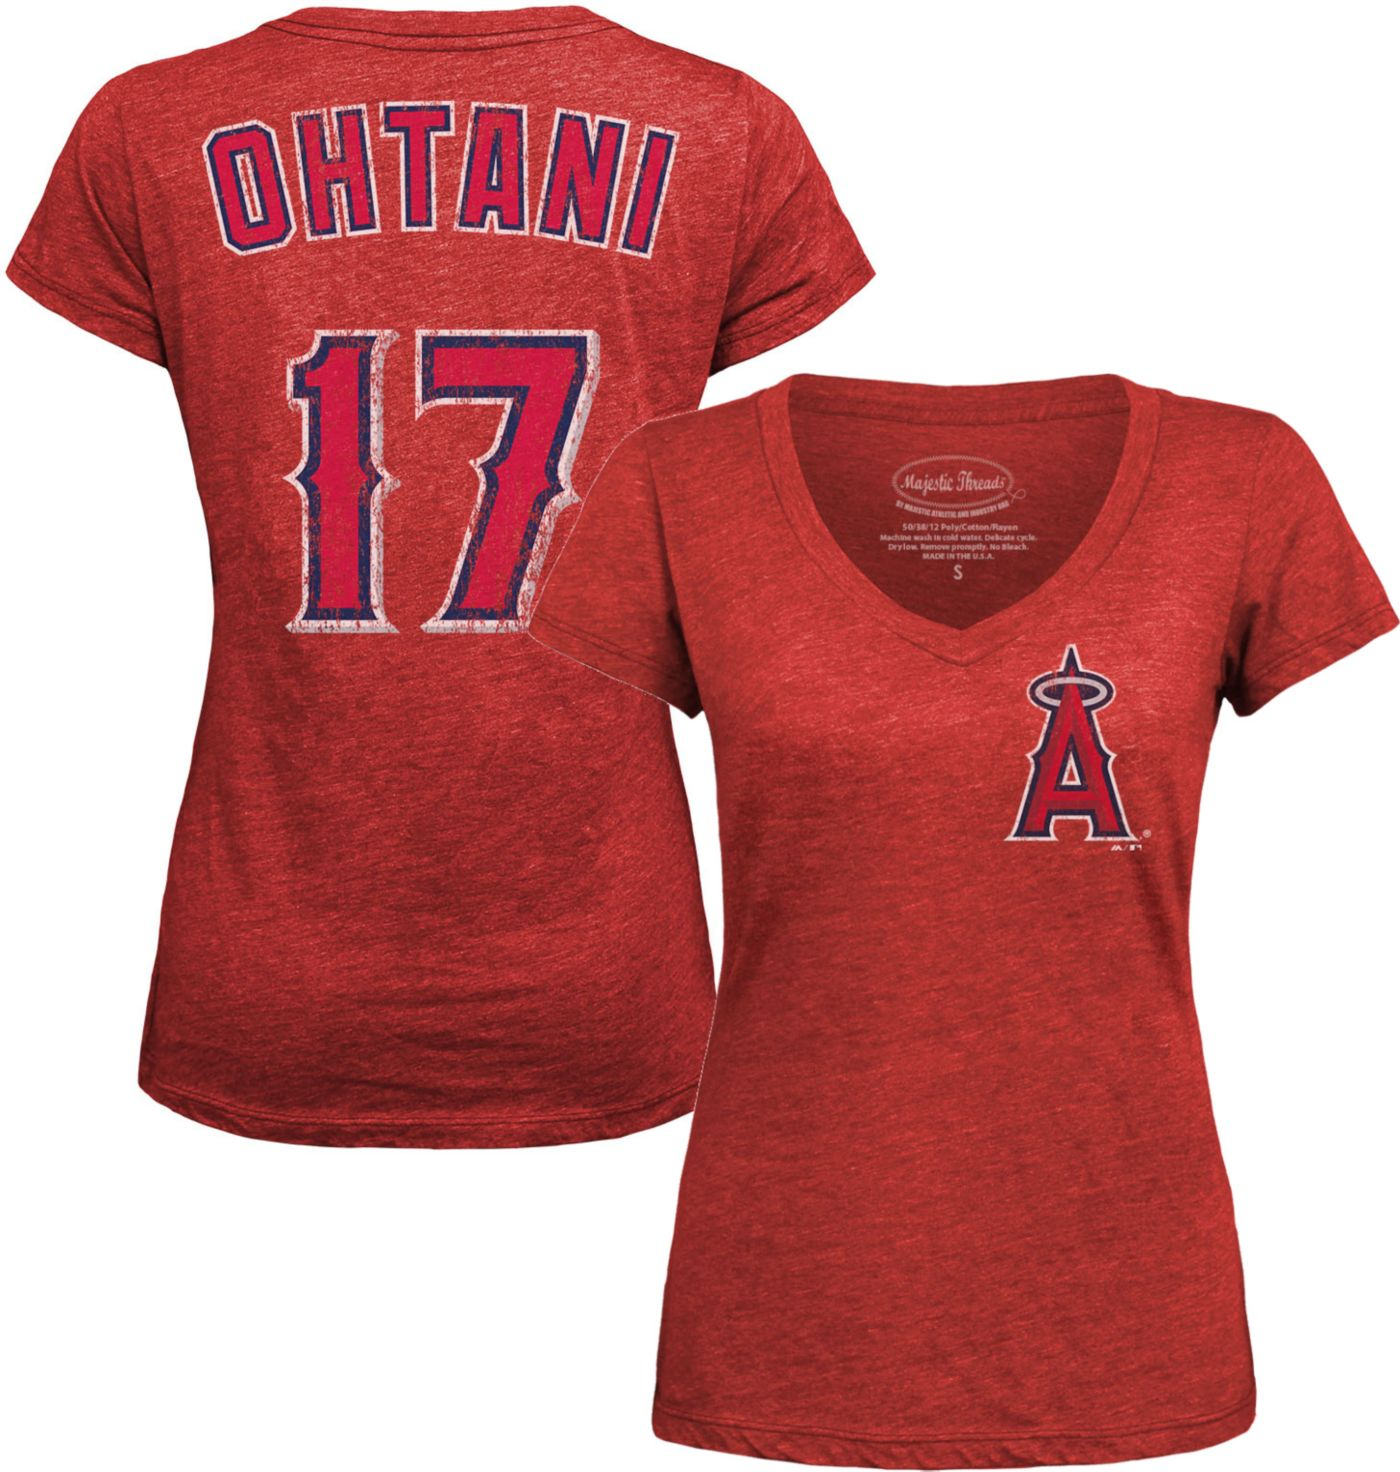 Majestic Threads Women's Los Angeles Angels Shohei Ohtani Red V-Neck T-Shirt